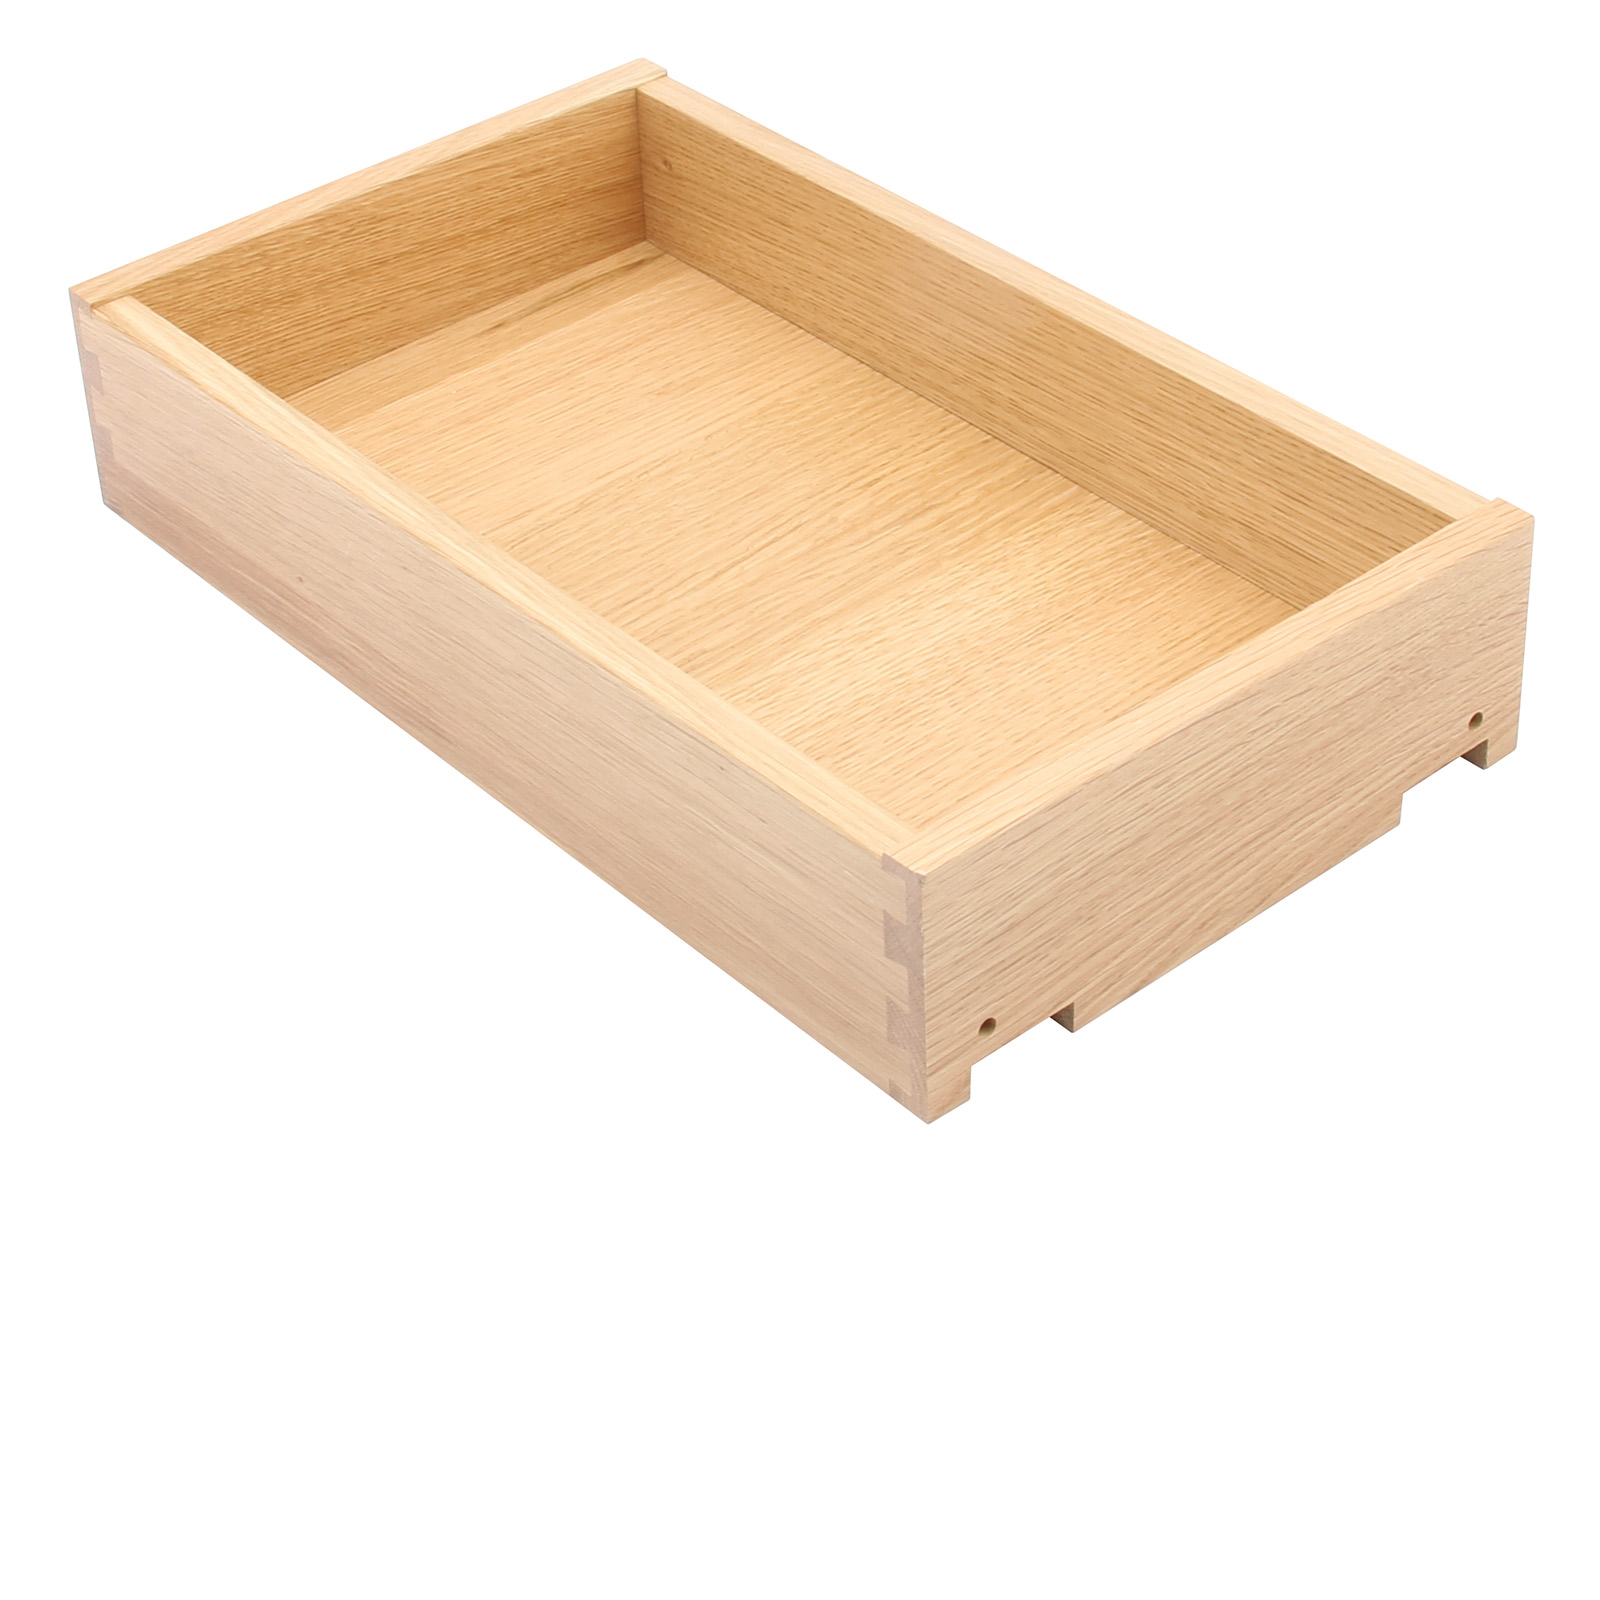 Standard timber drawers